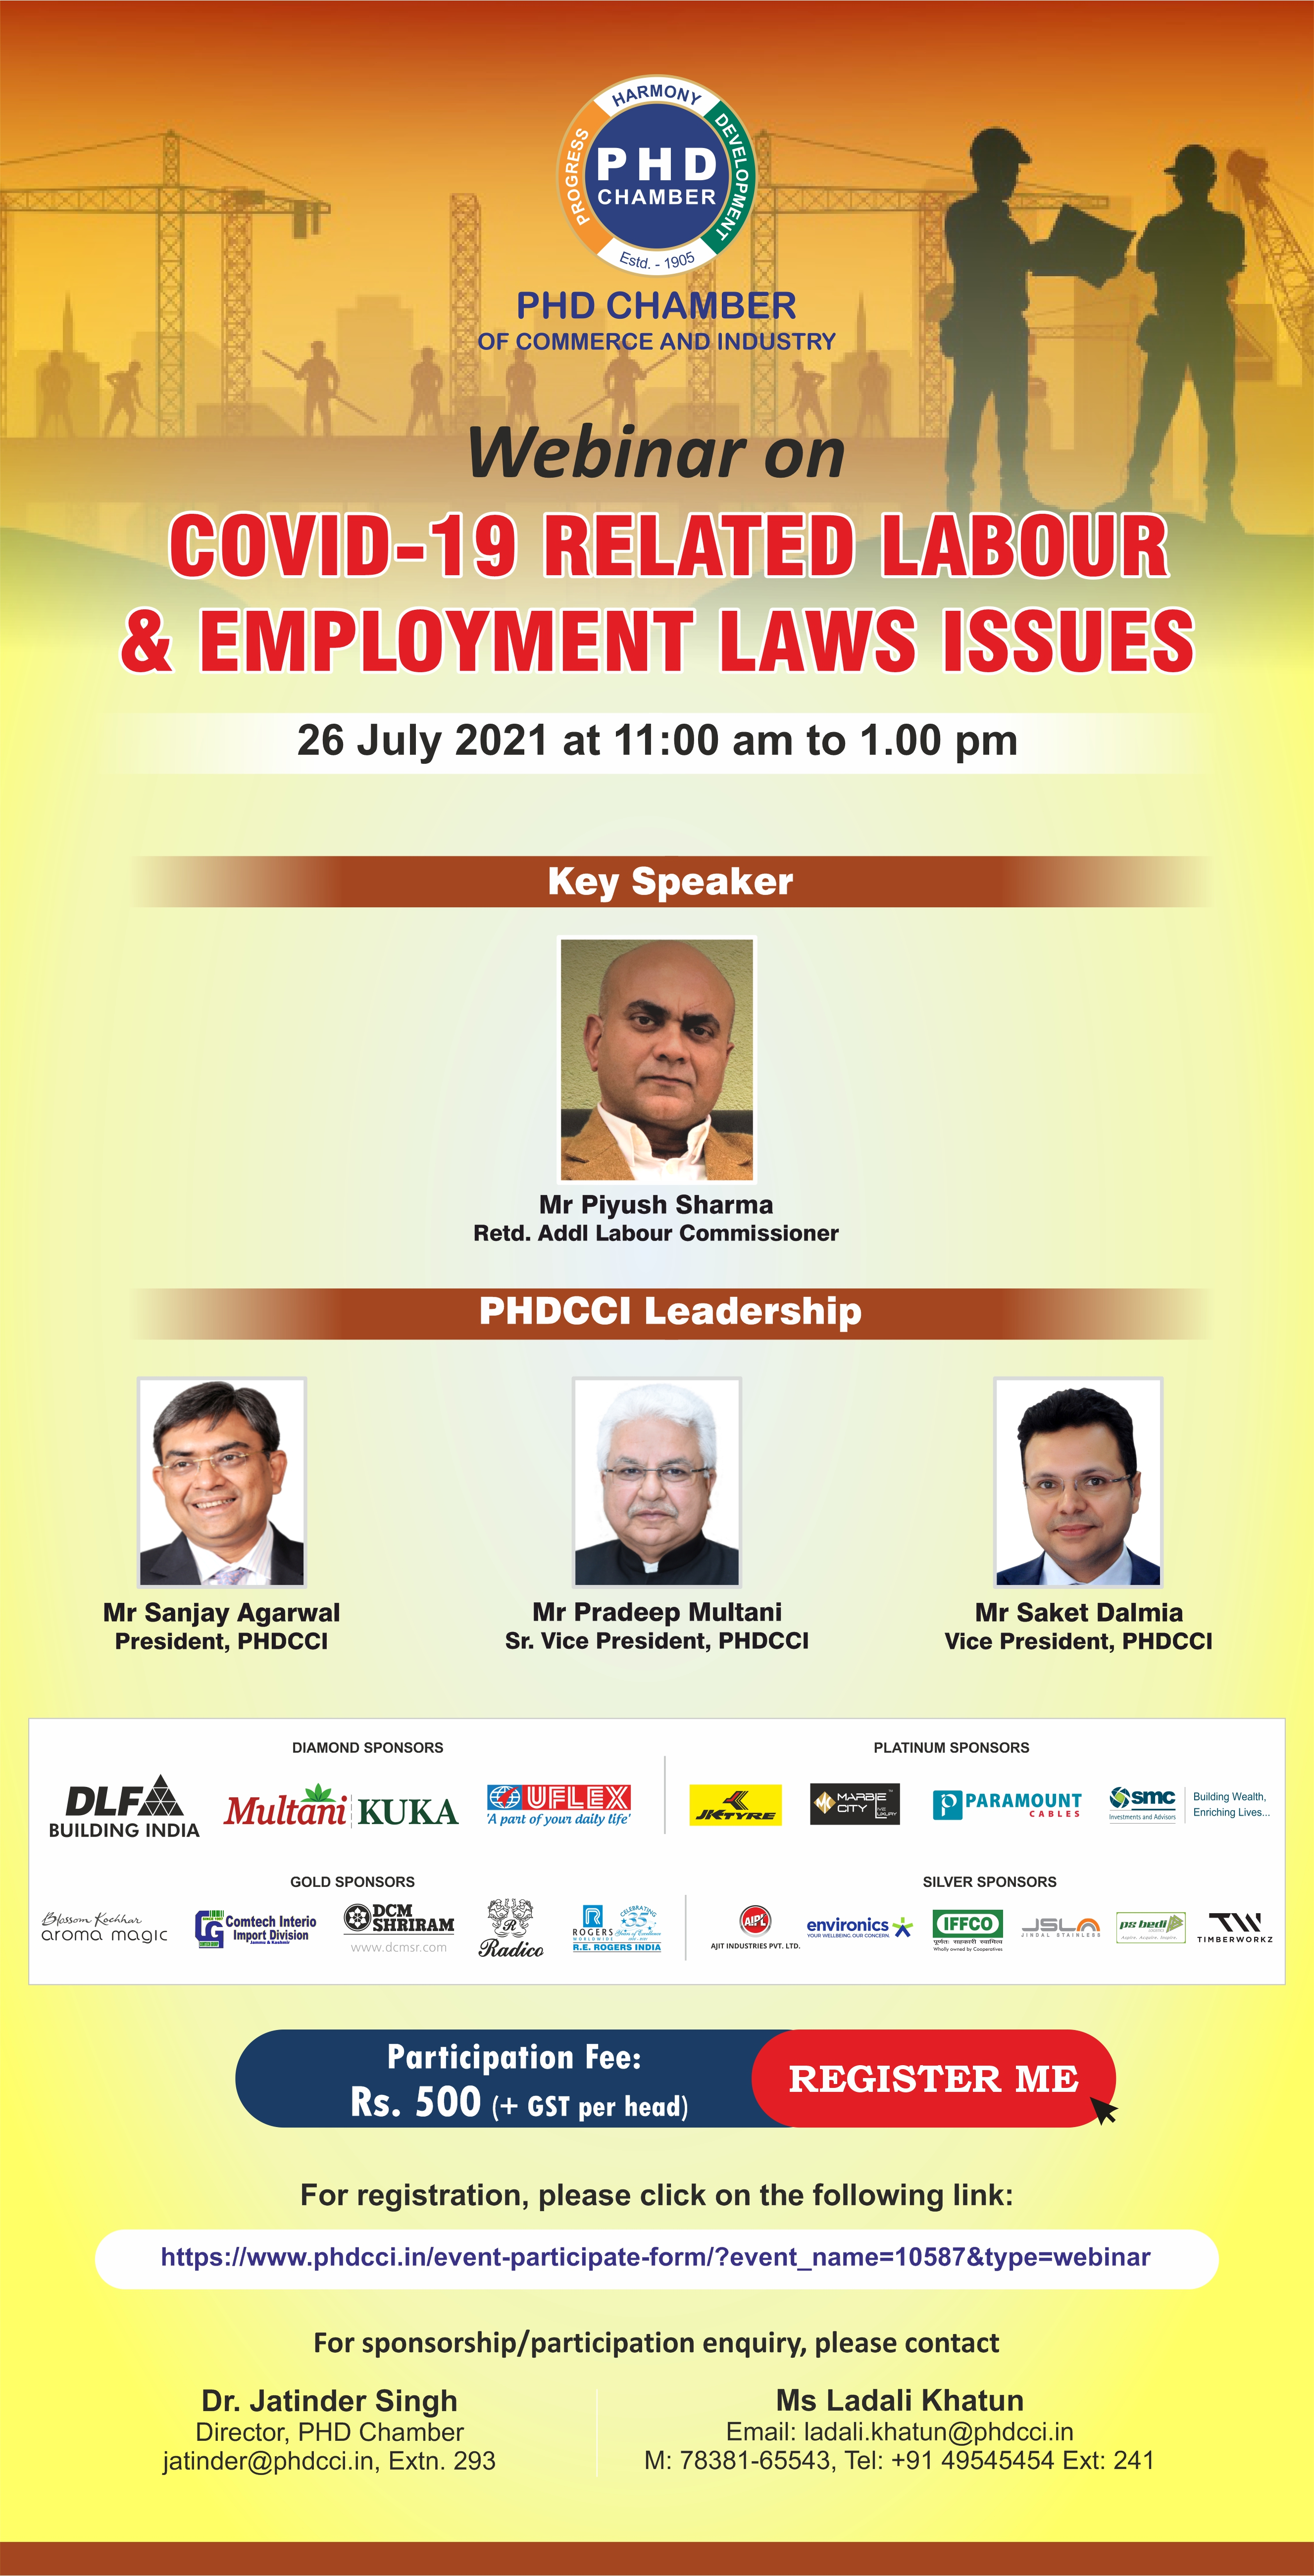 Webinar on COVID-19 related Labour & Employment Laws Issues